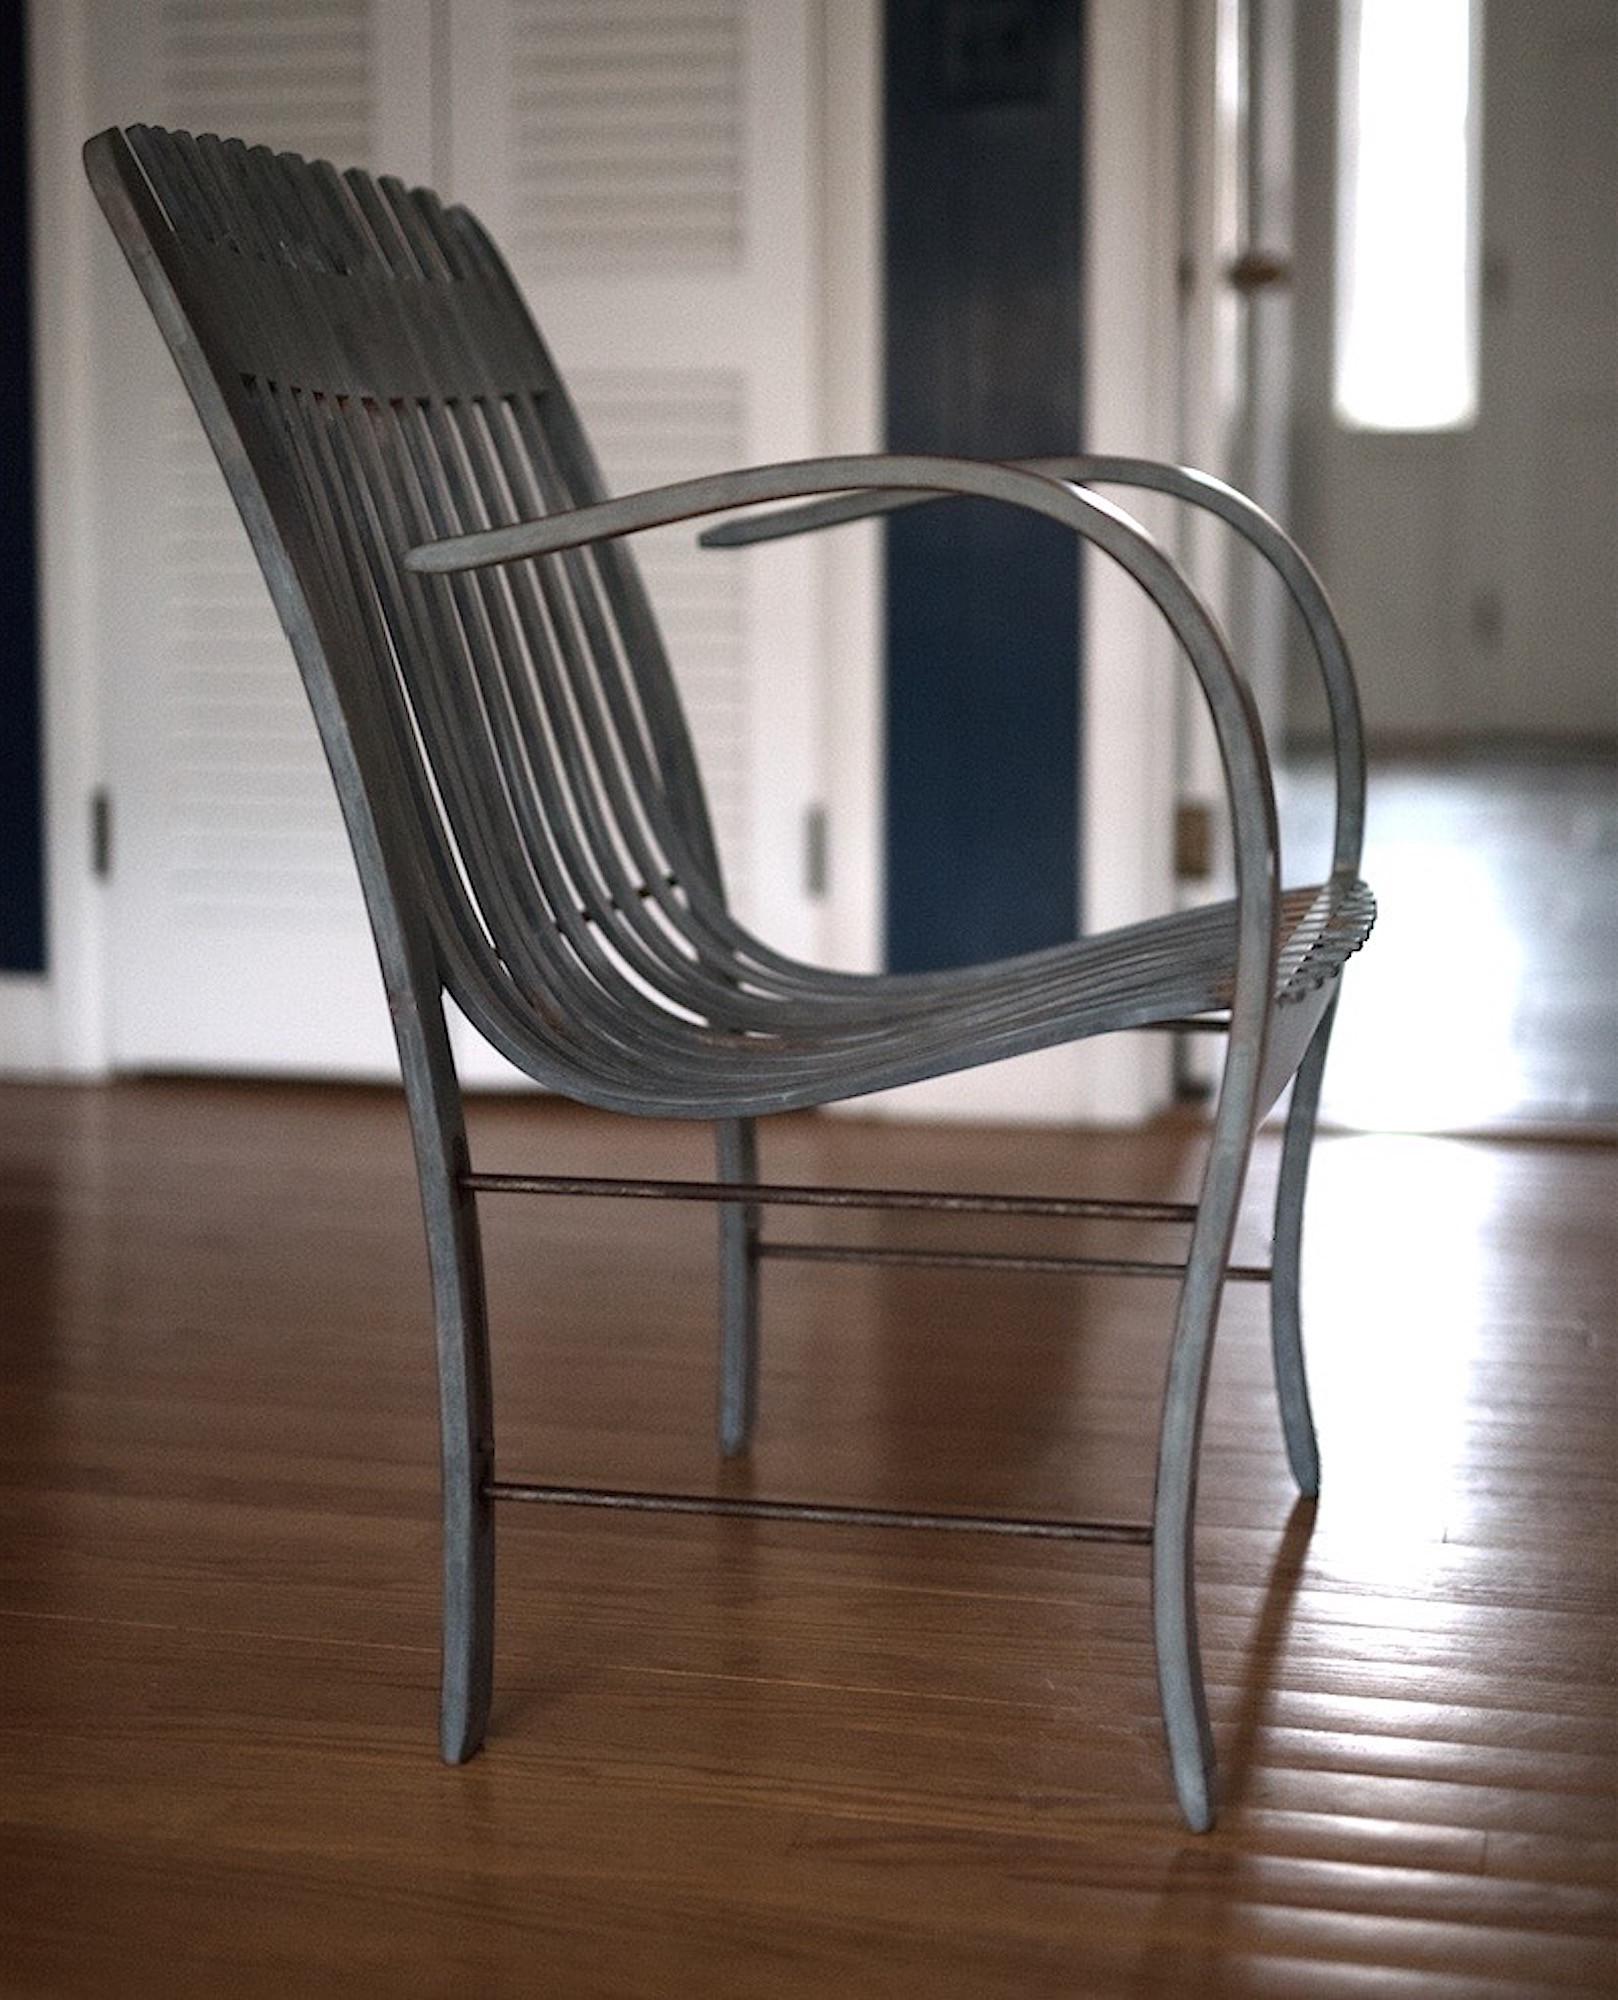 bent-cherry-chair-in-blue-1.jpg